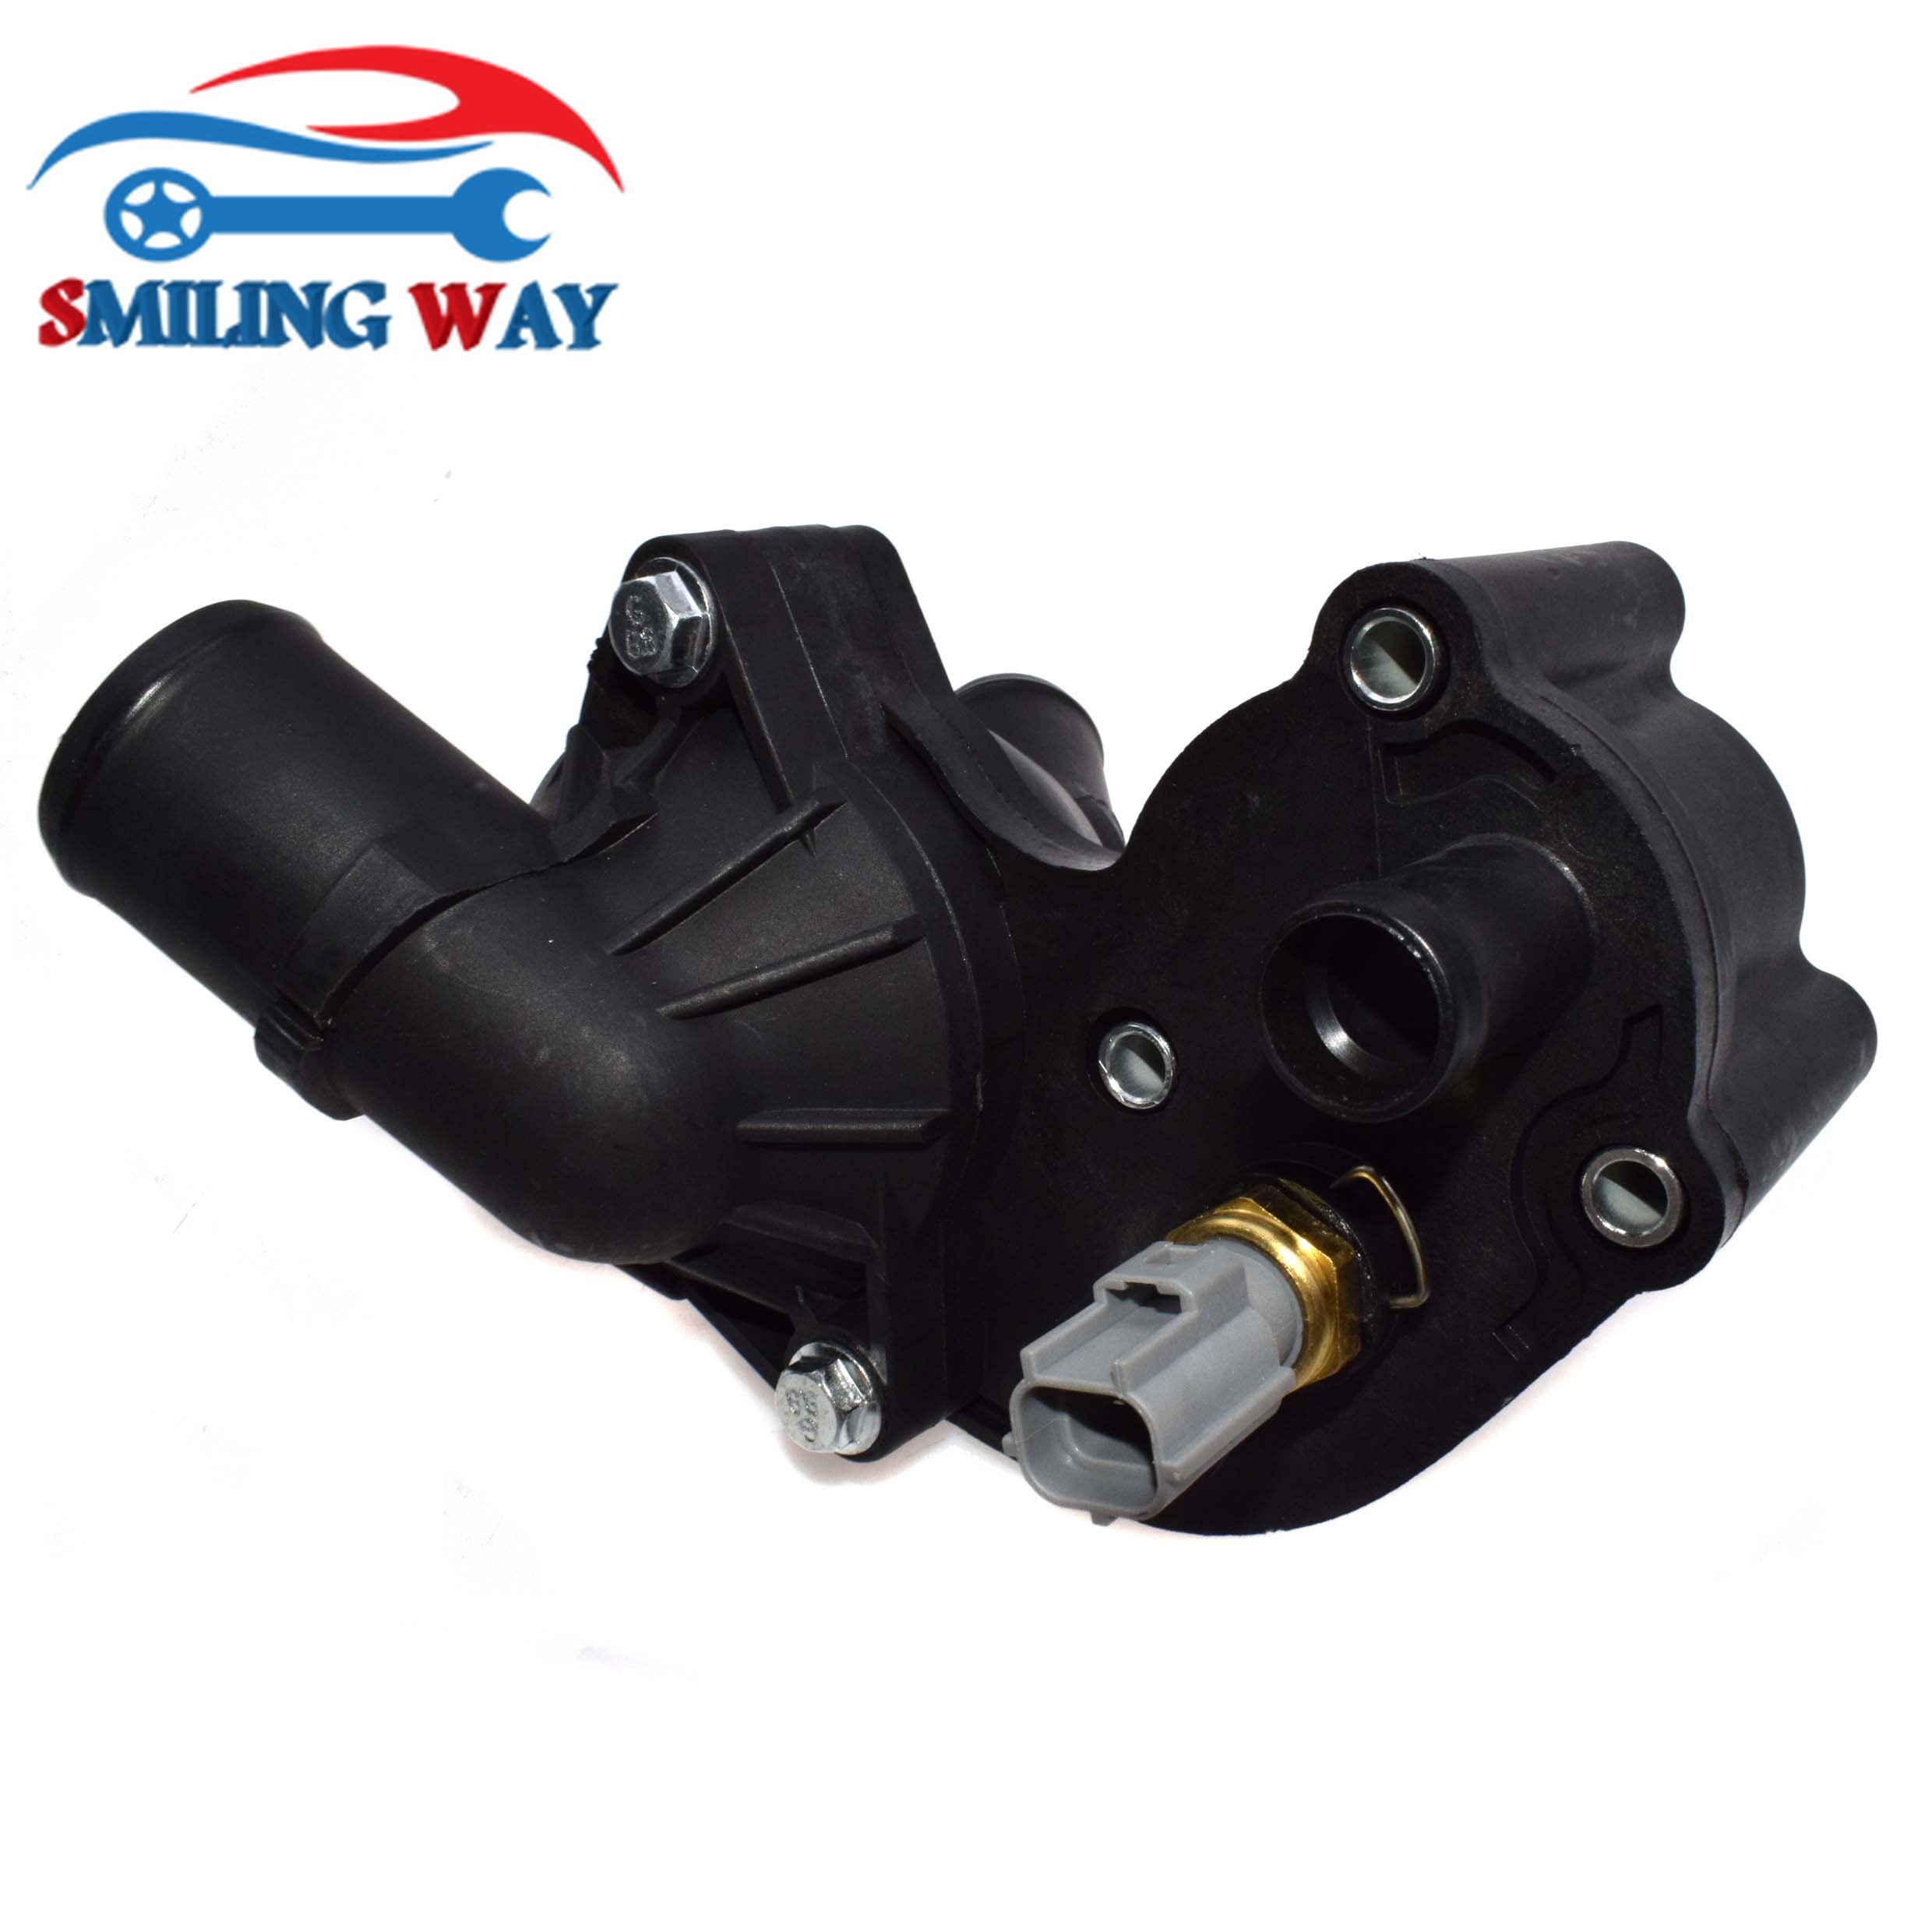 Engine Coolant Thermostat Housing Assembly For Explorer Mountaineer 4.0 V6